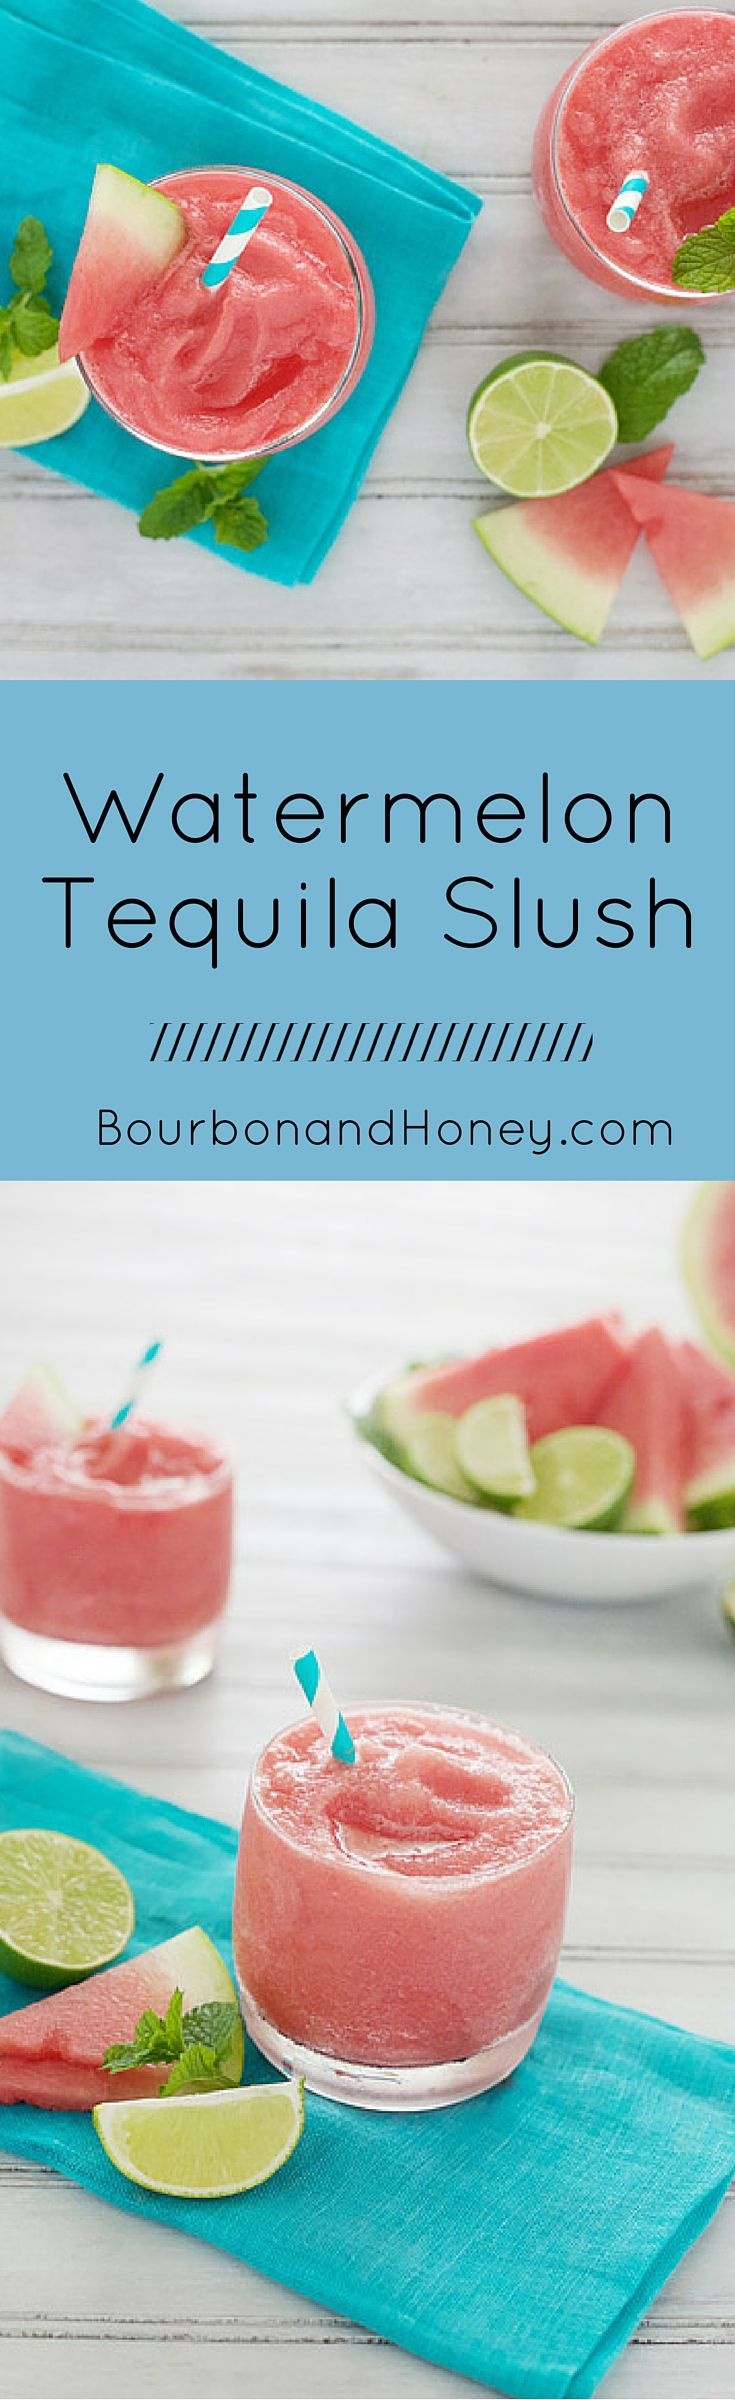 Watermelon Tequila Slush   BourbonandHoney.com -- This pretty pink Watermelon Tequila Slush is a tasty and refreshing way to keep your cool all summer long. - Click through to read the full post or Repin to find later!